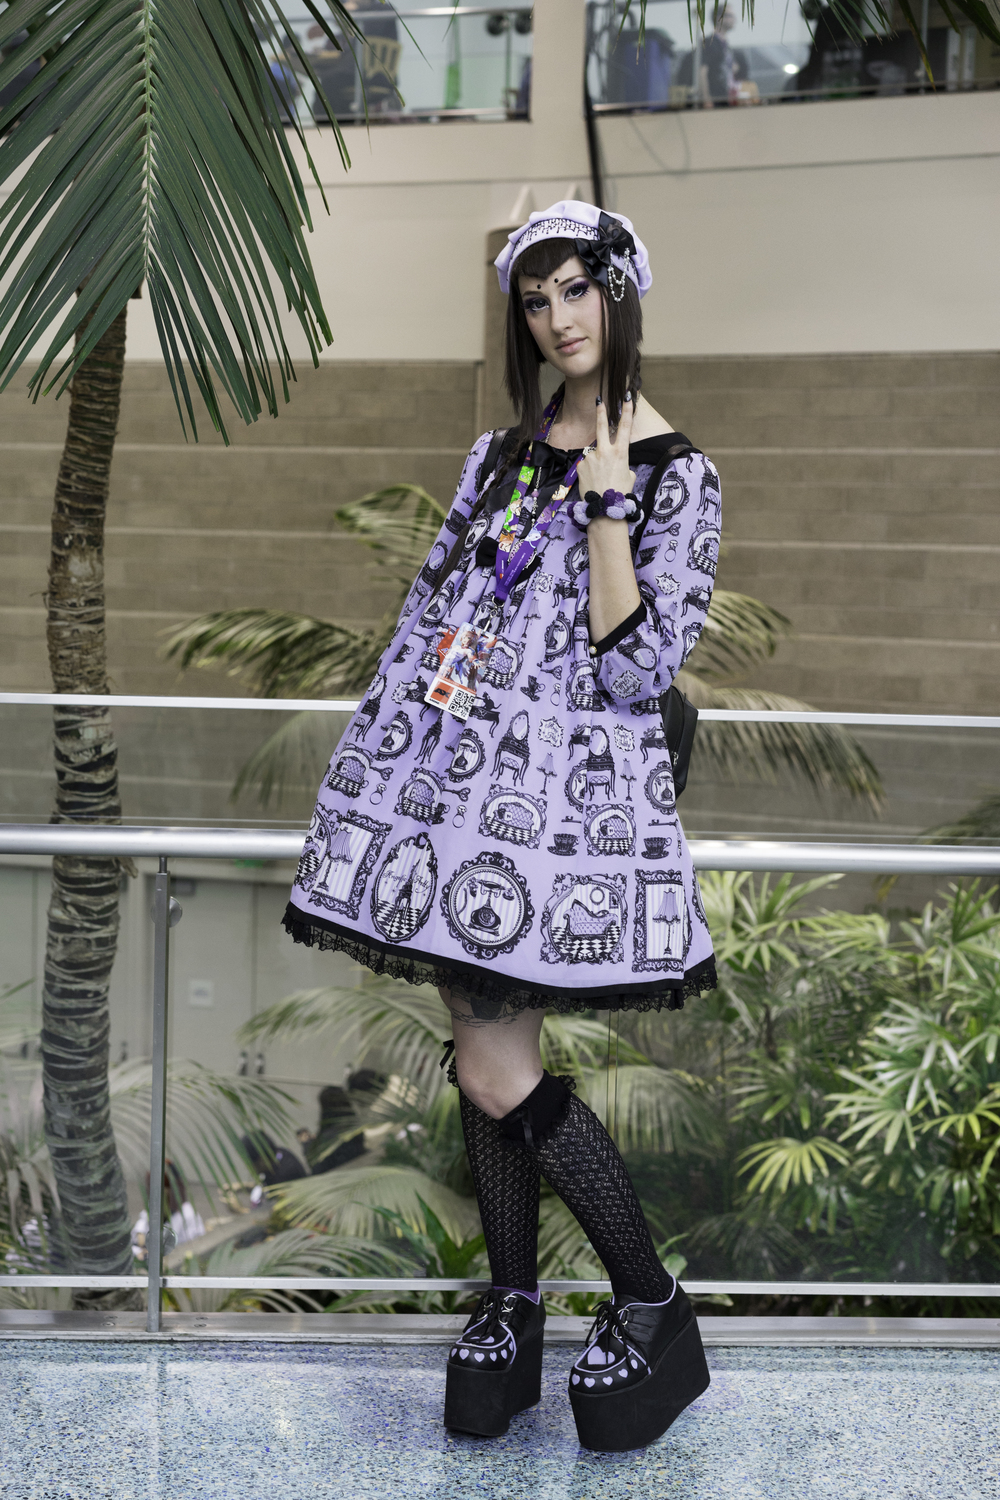 PurpleDress_Anime_Expo__July4_2015.jpg